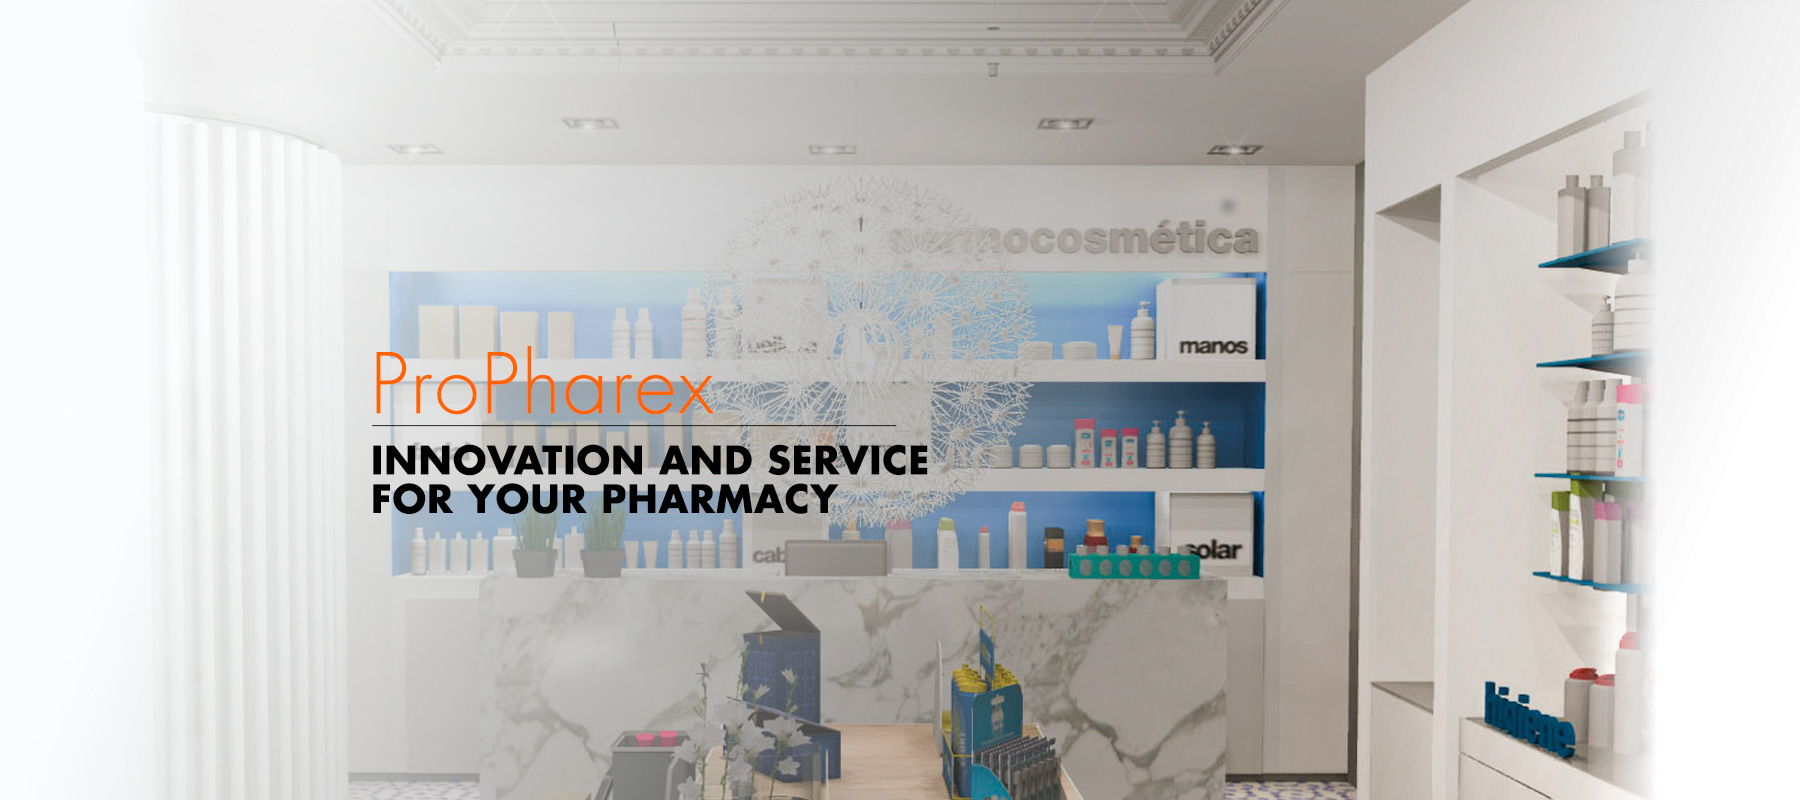 Propharex, innovation and service for your pharmacy